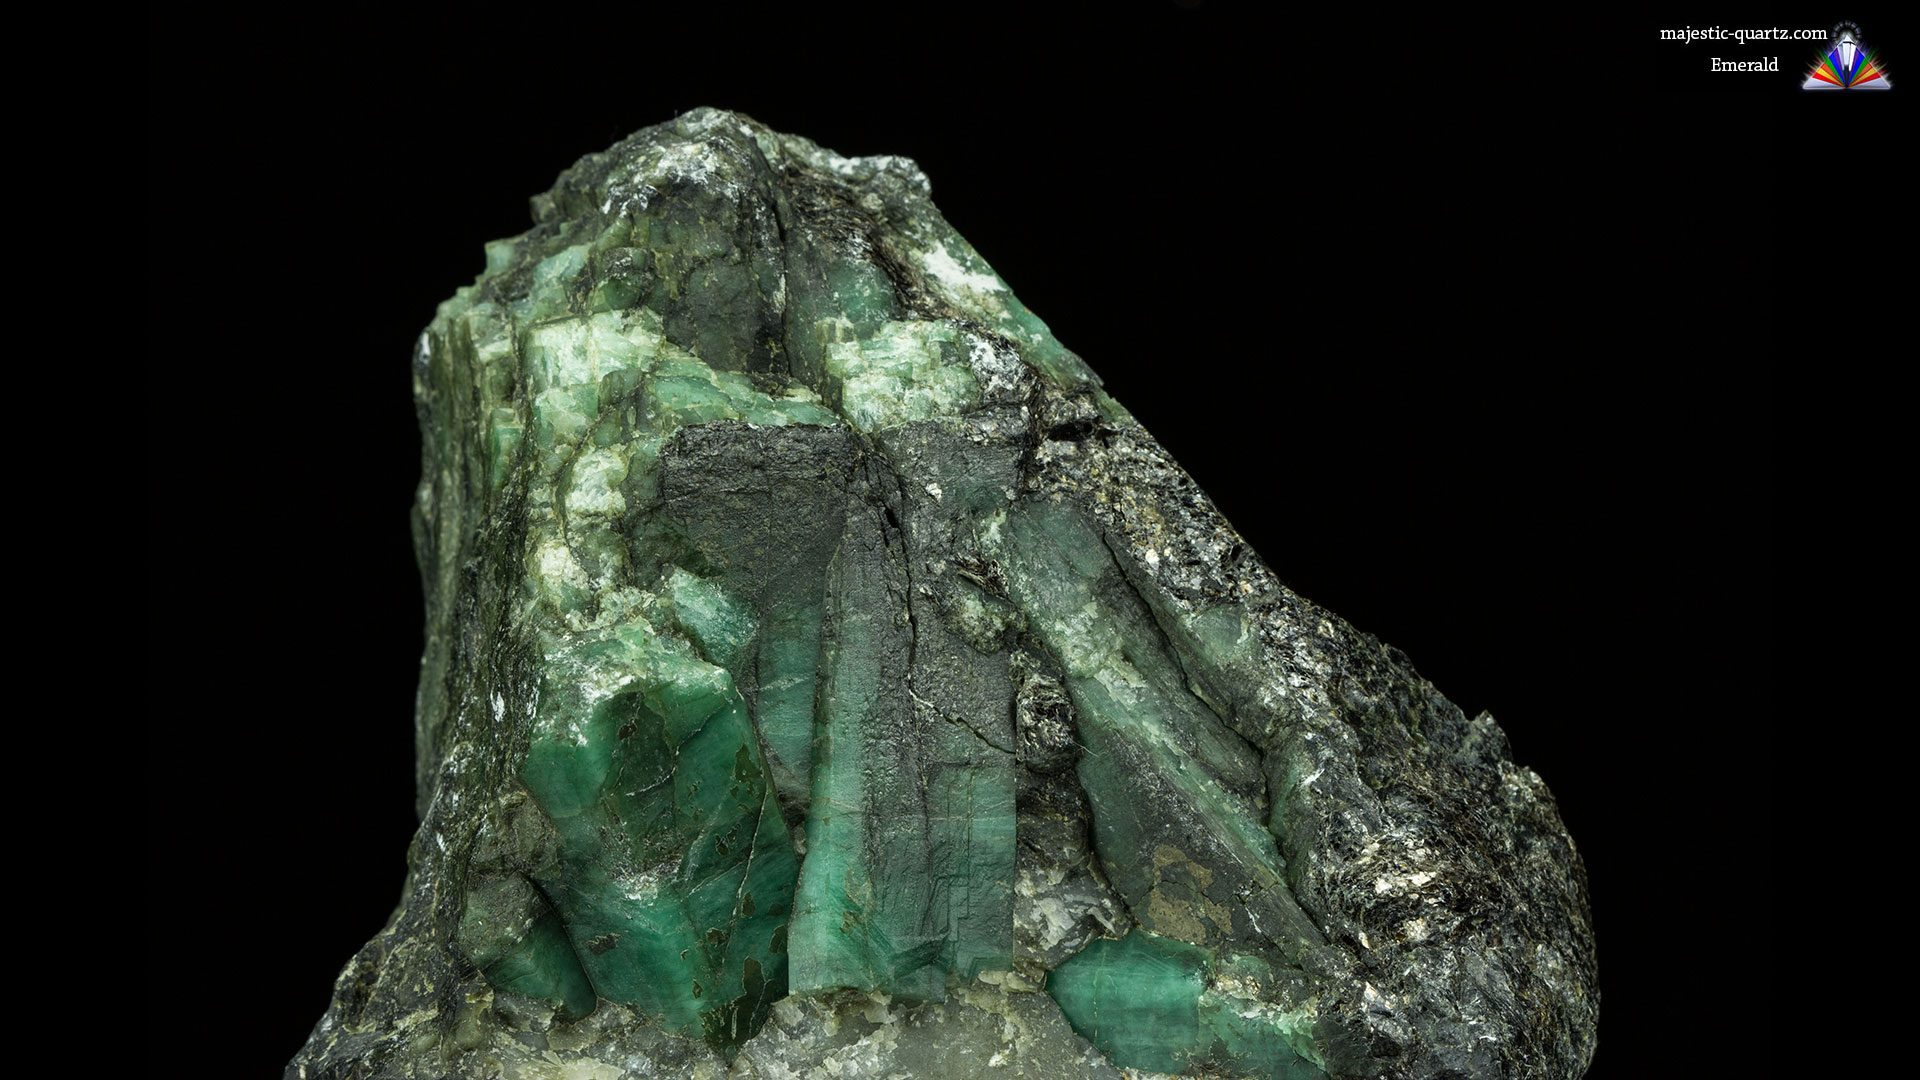 Emerald on Matrix Crystal Specimen - Photograph by Anthony Bradford